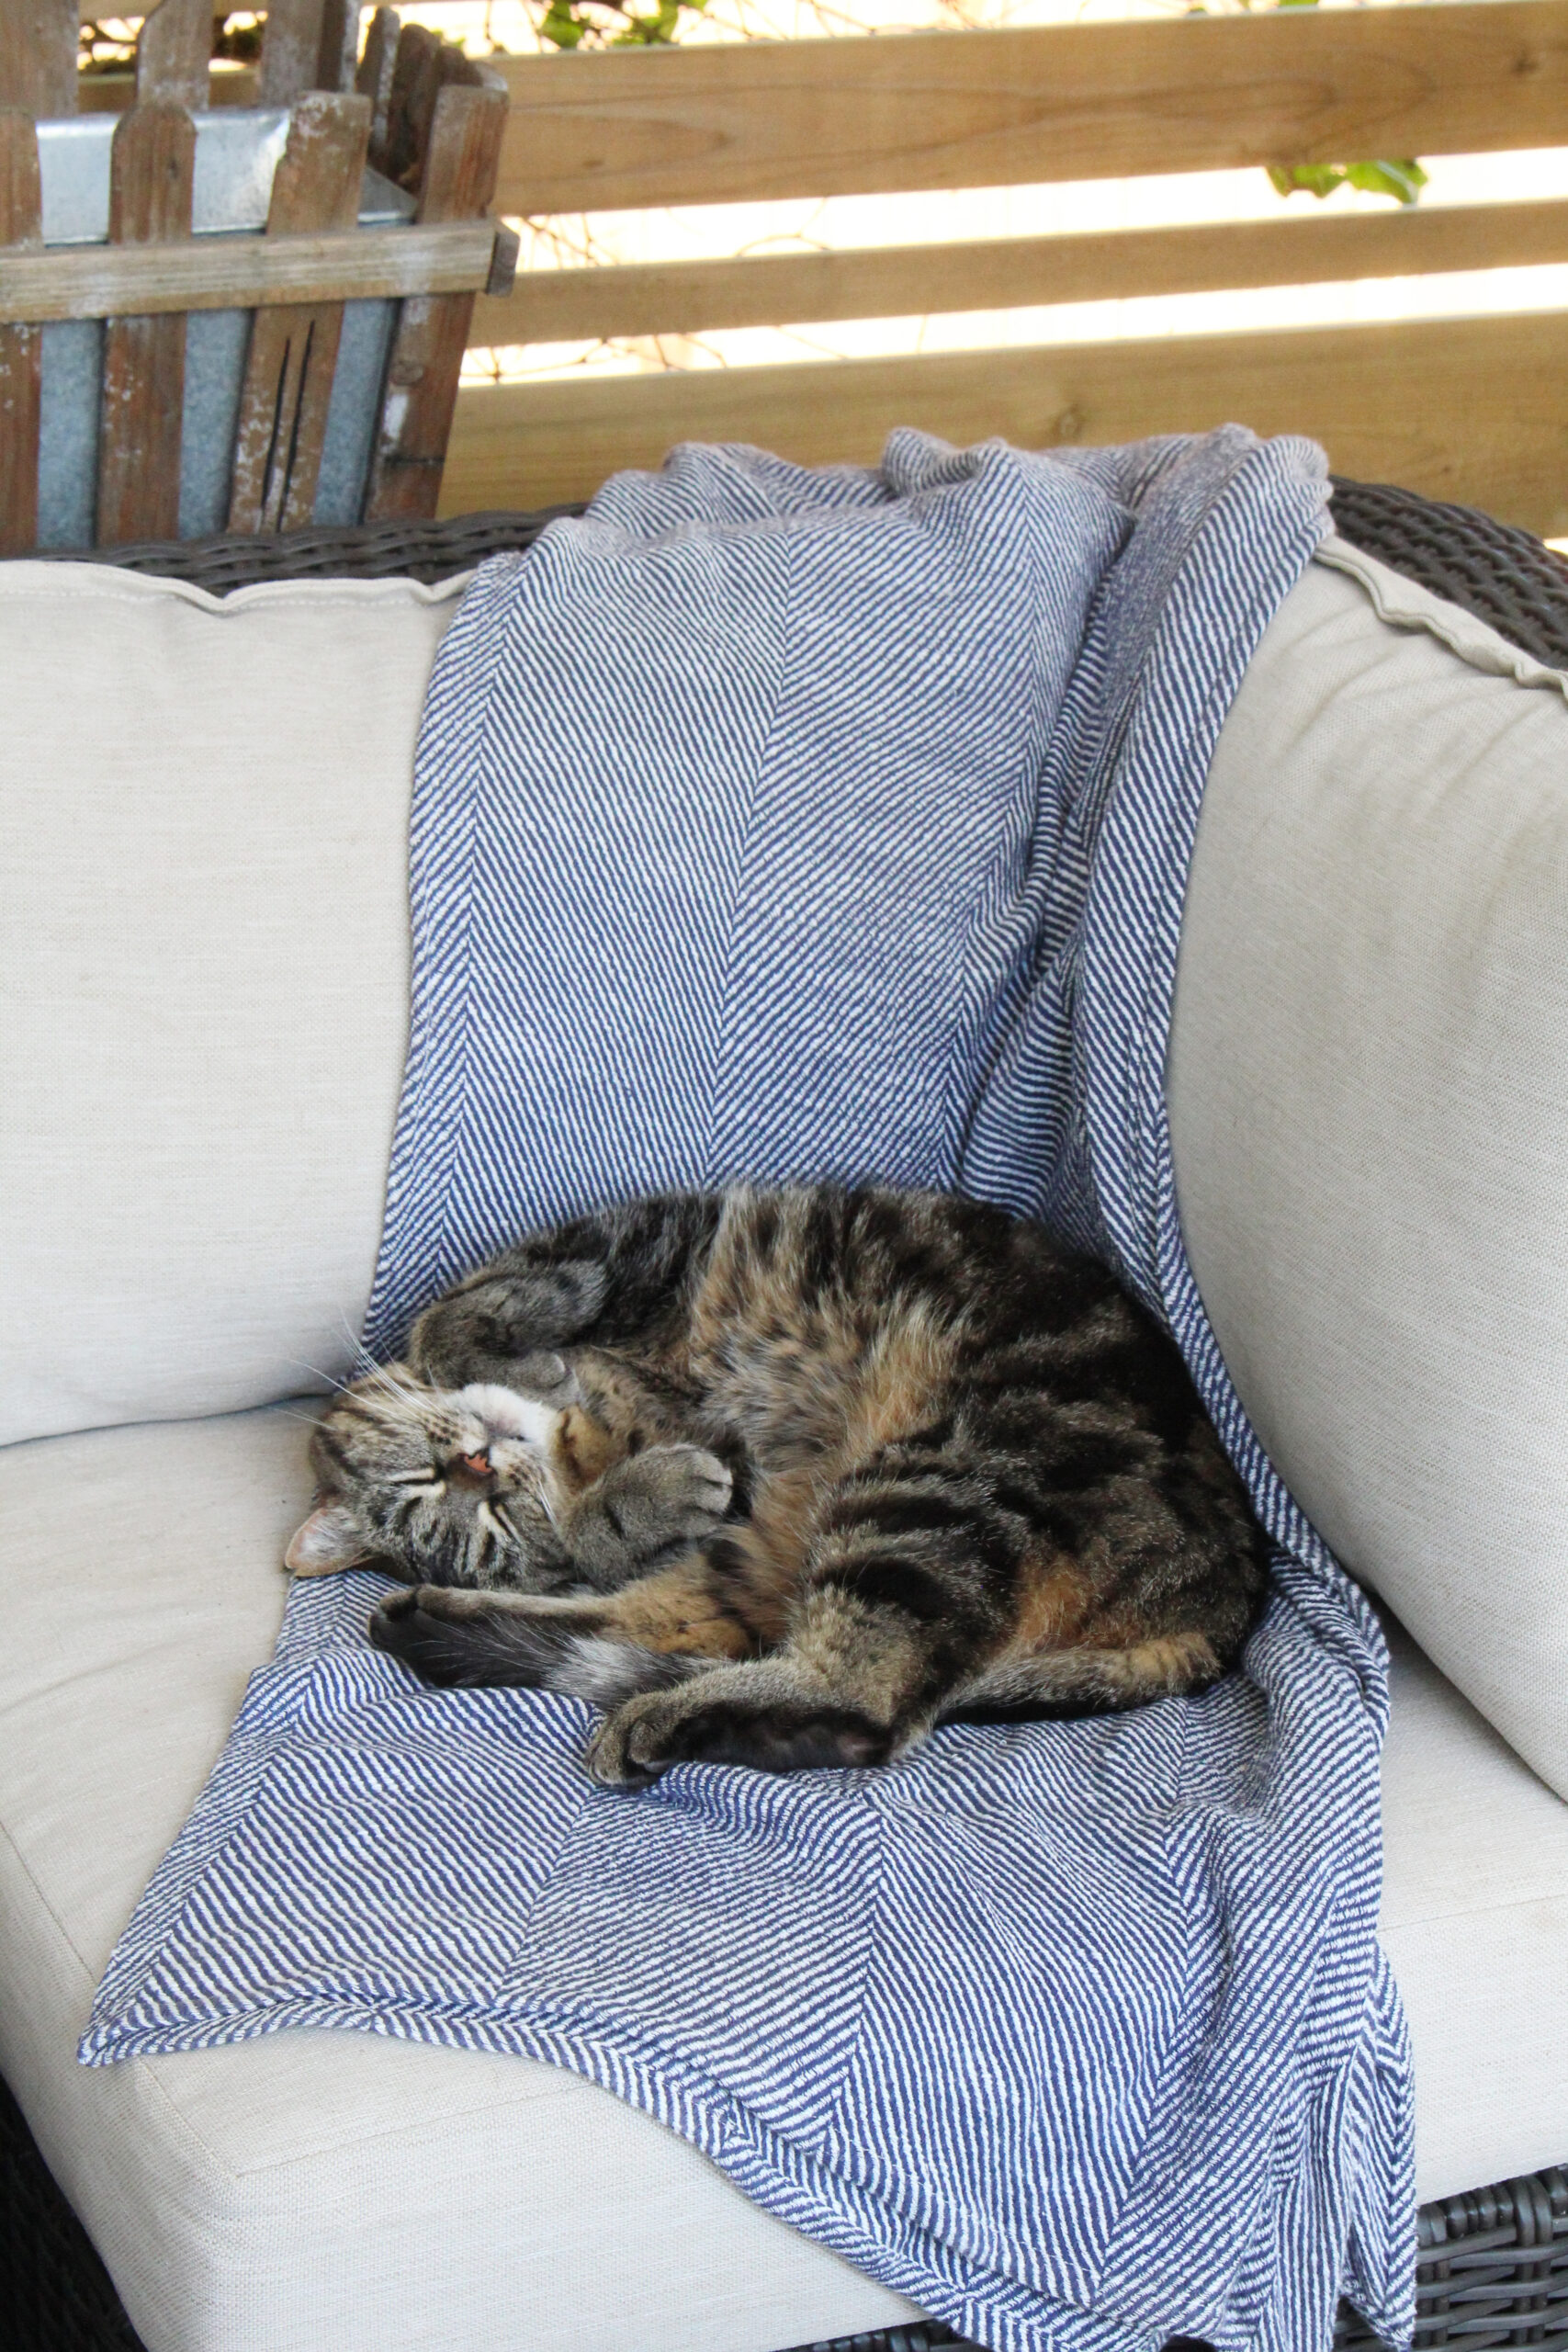 Cat curled up on an outdoor sectional.